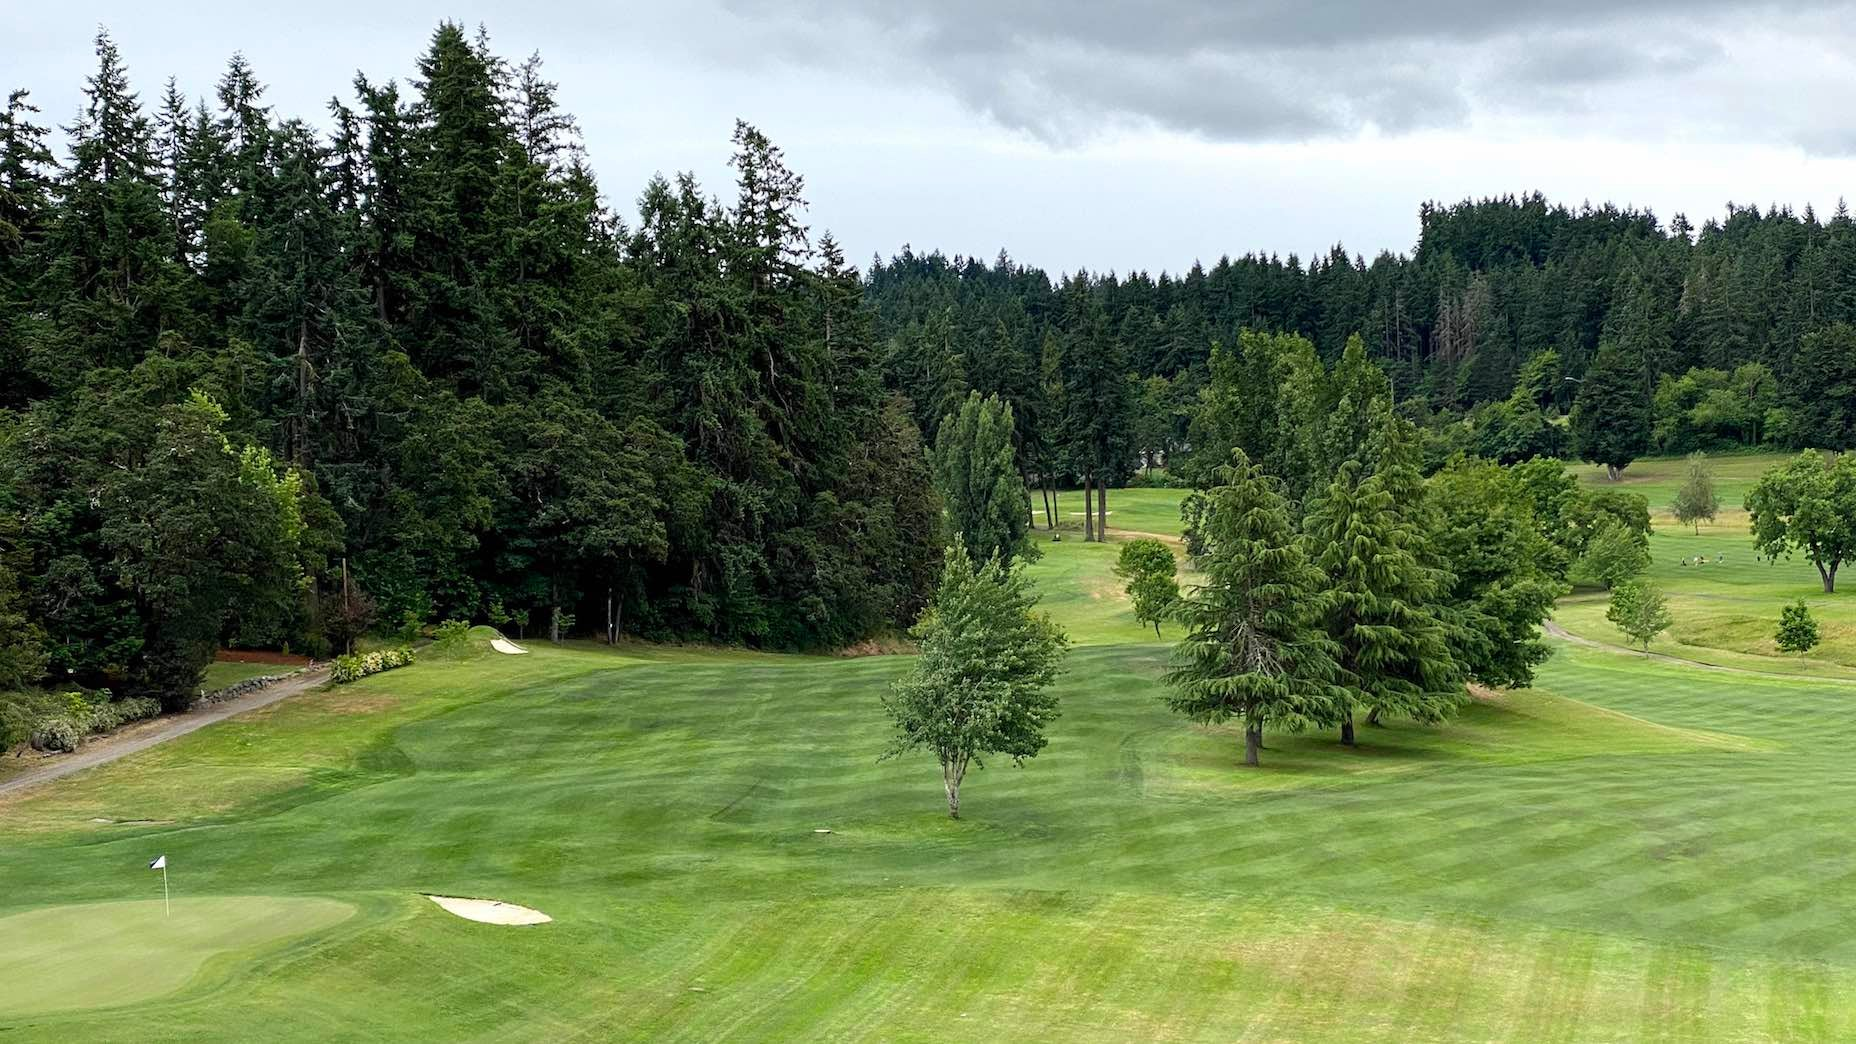 Laurelwood in Eugene, Ore. has become a leader in the organic golf space.